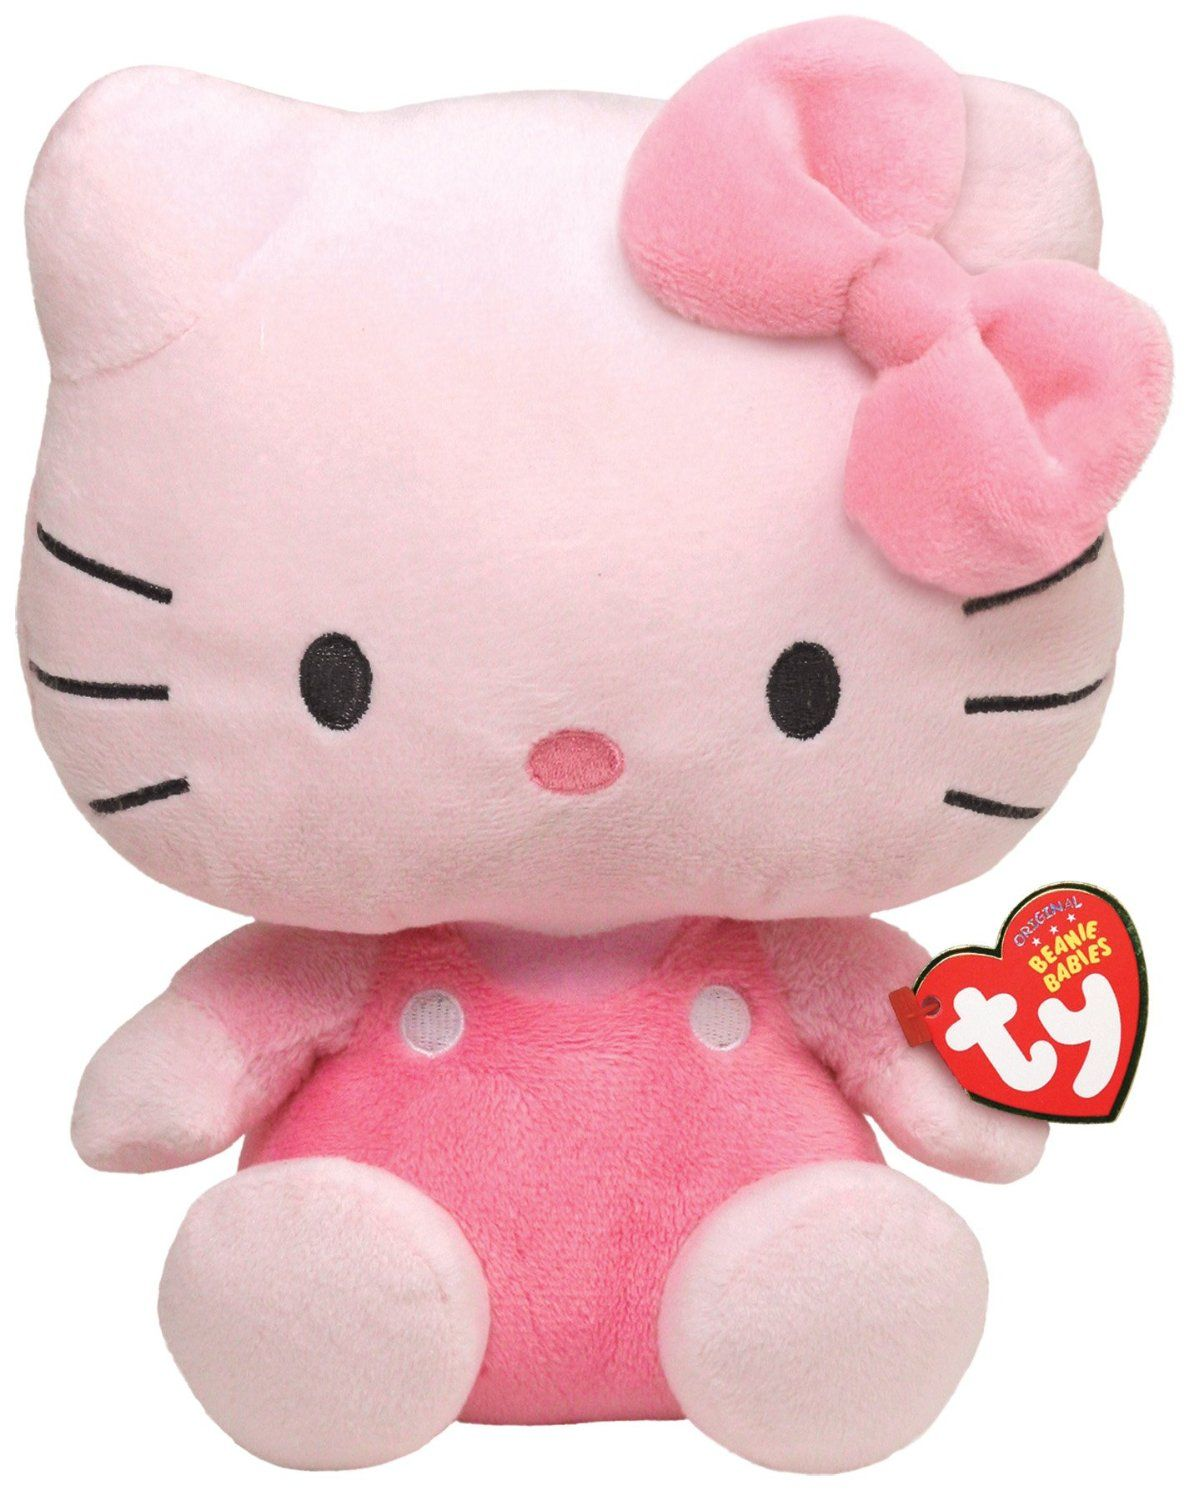 Hello Kitty Pink Beanie Baby Stuffed Animal by Ty (40894) by TY